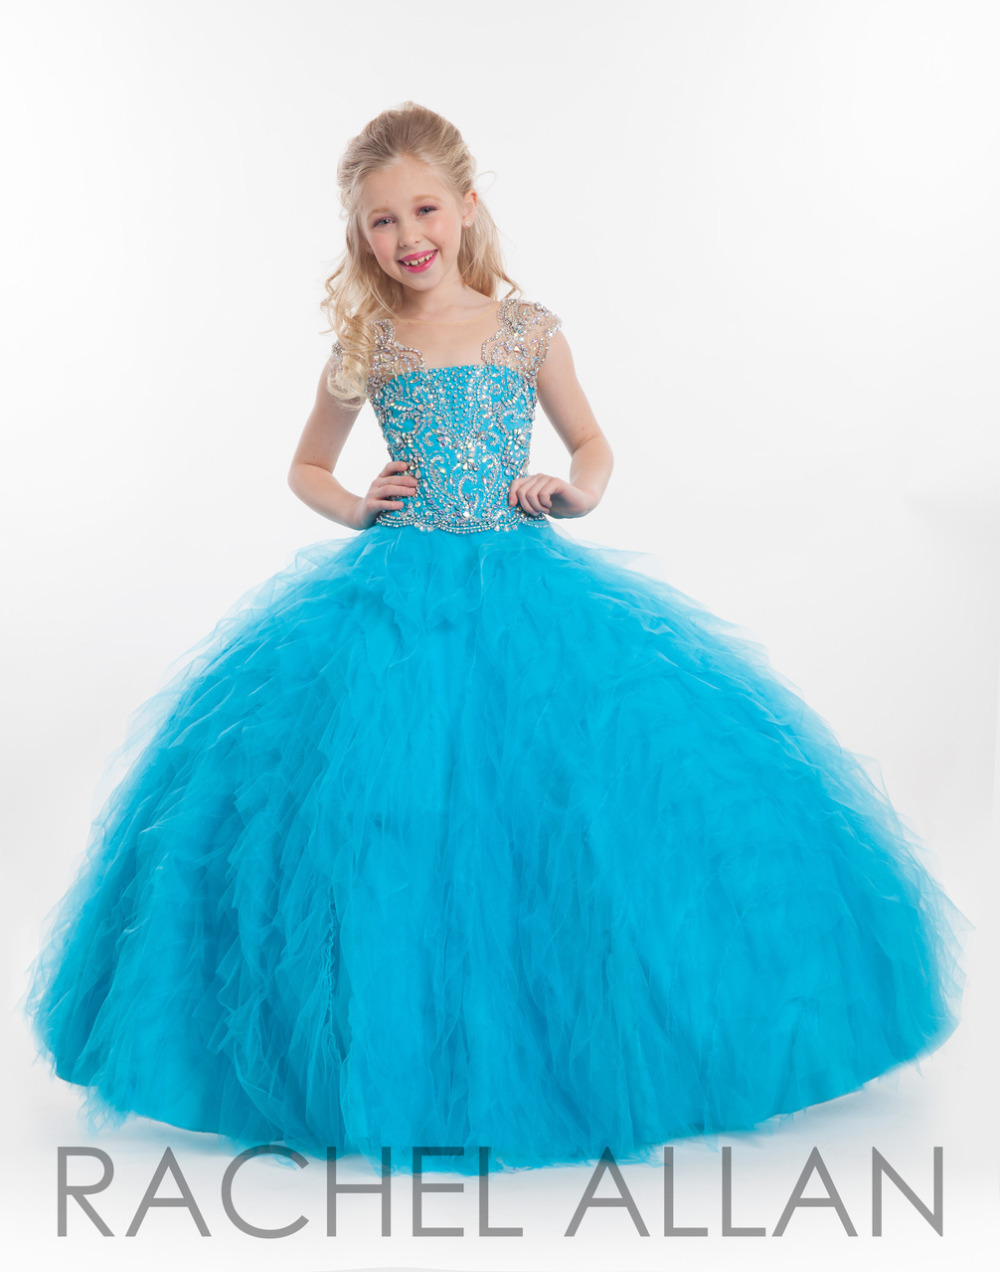 Collection Teen Girl Dresses Pictures - Newyorkfashion